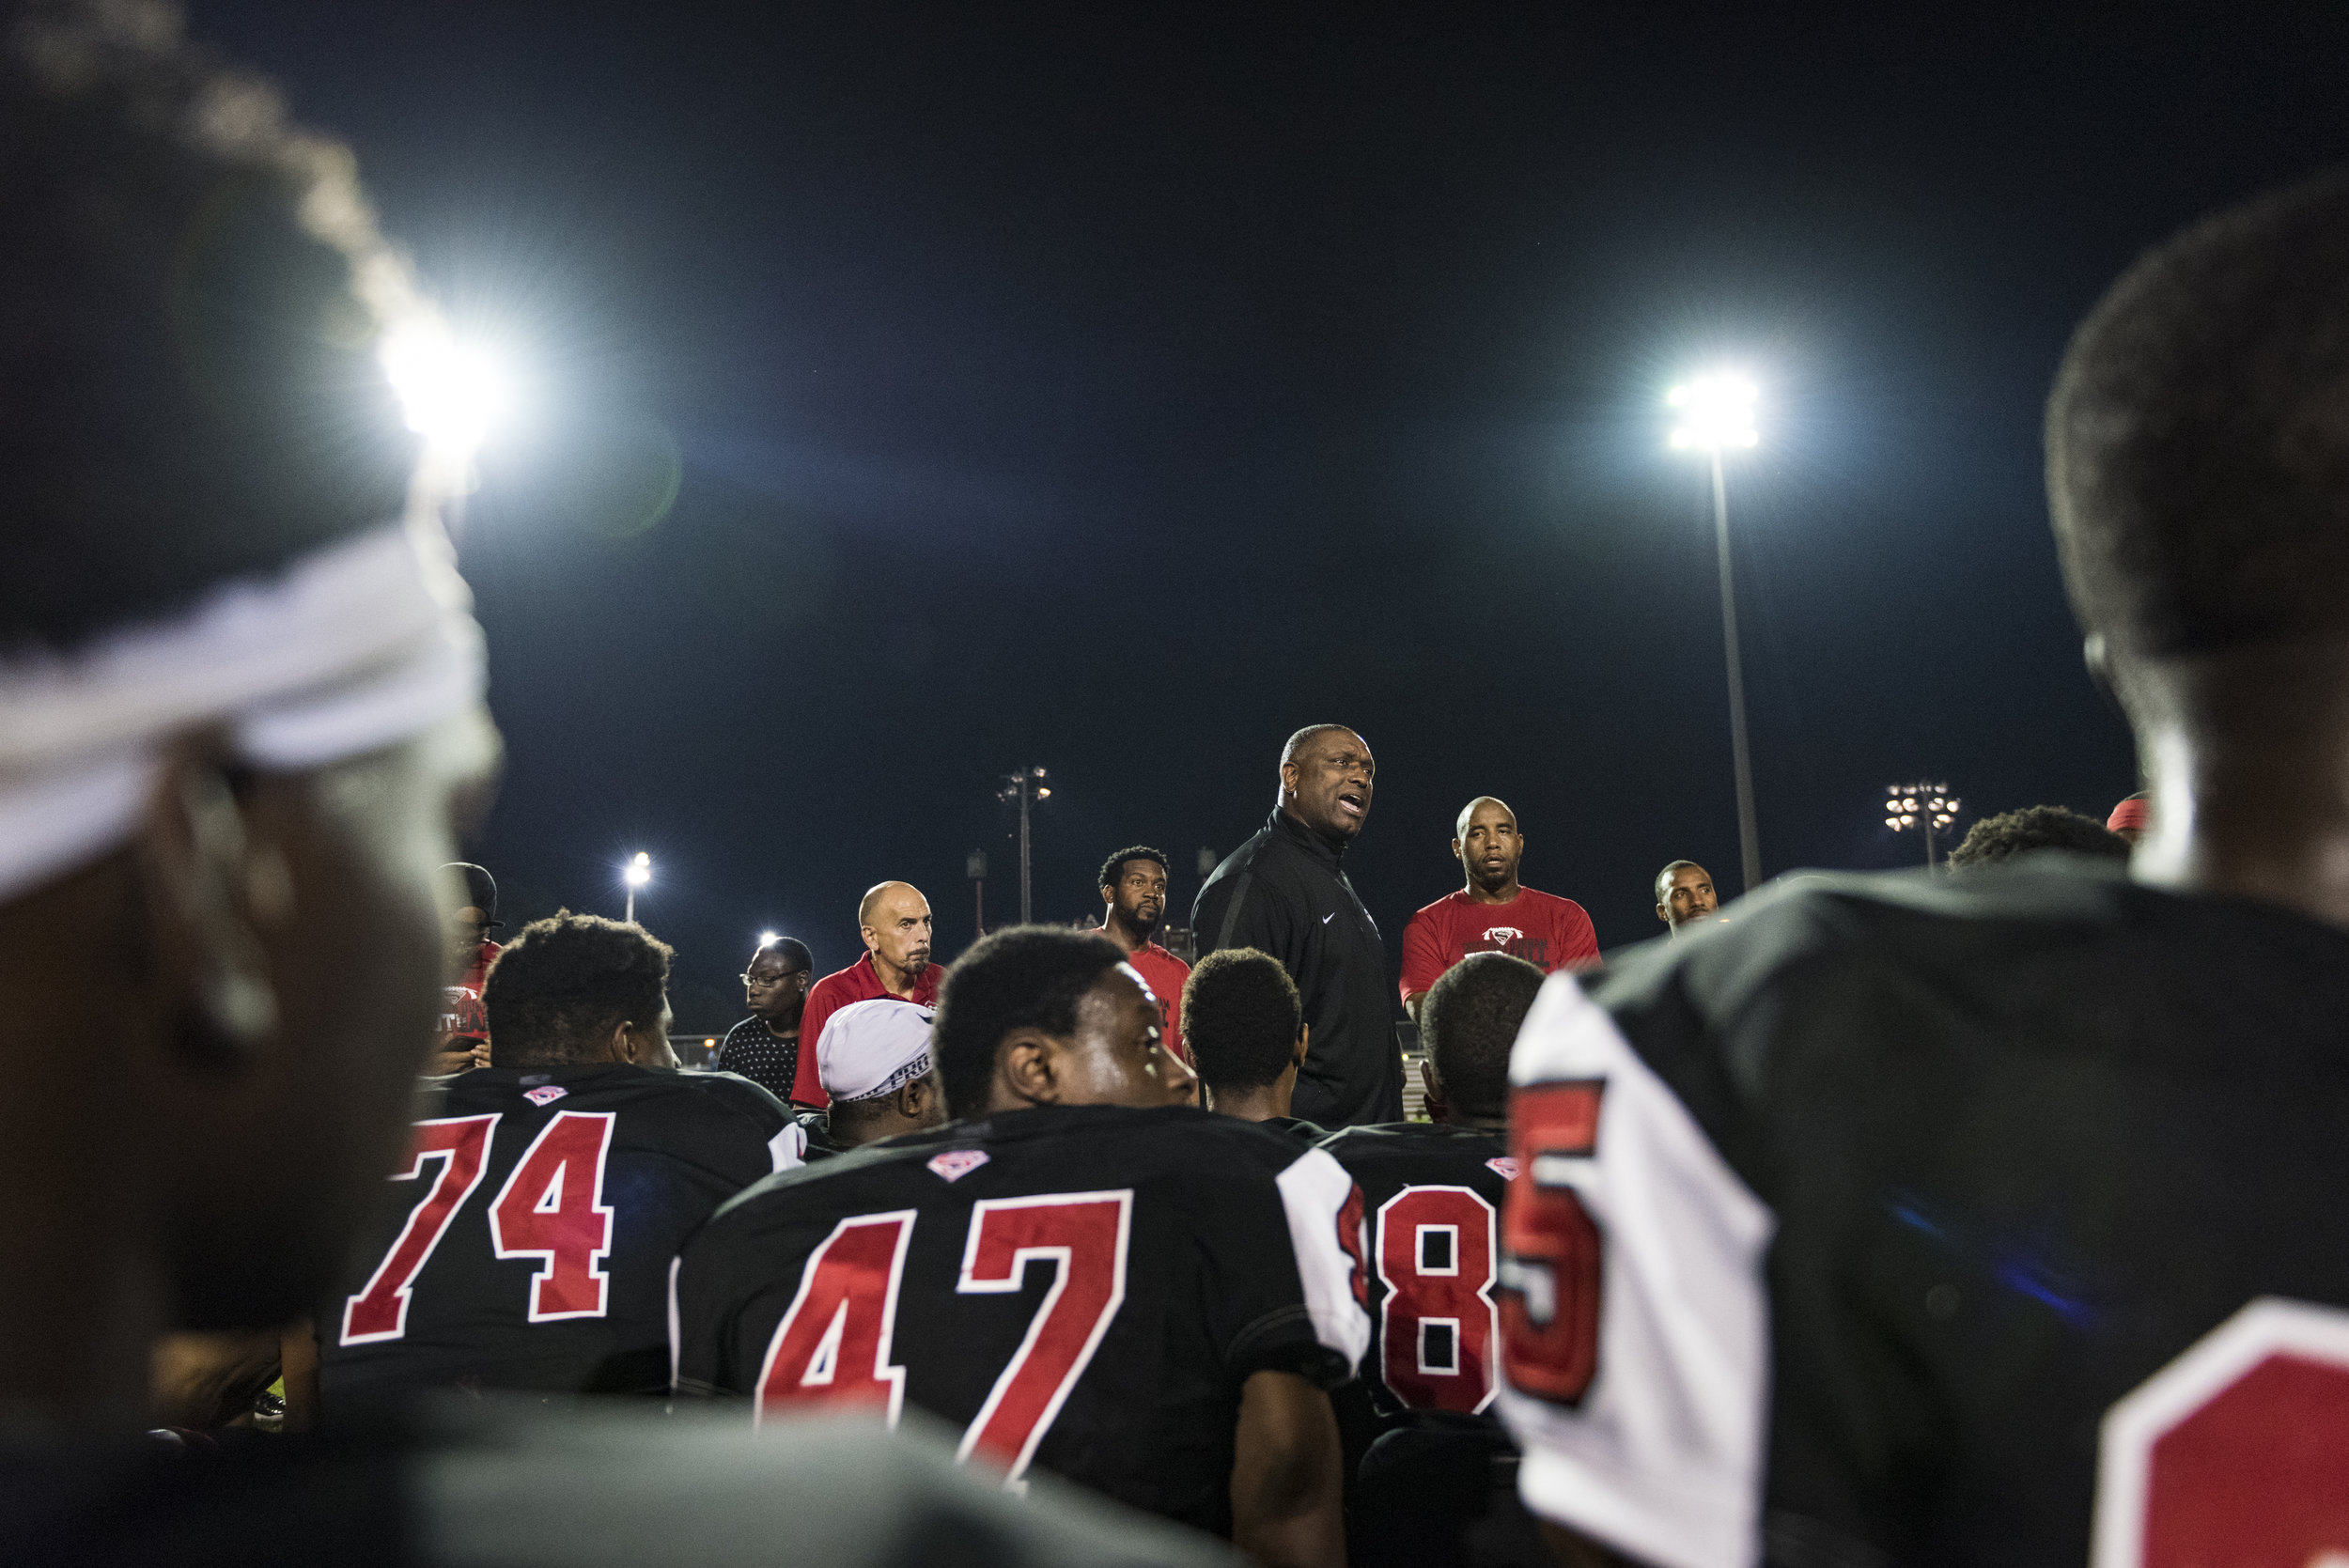 Southern Durham head coach Darius Robinson addresses his team after a big win against the the No. 4 team, Seventy-First High School. The Spartans scored nine points in the final 78 seconds of the game to finish the upset, 36-32.